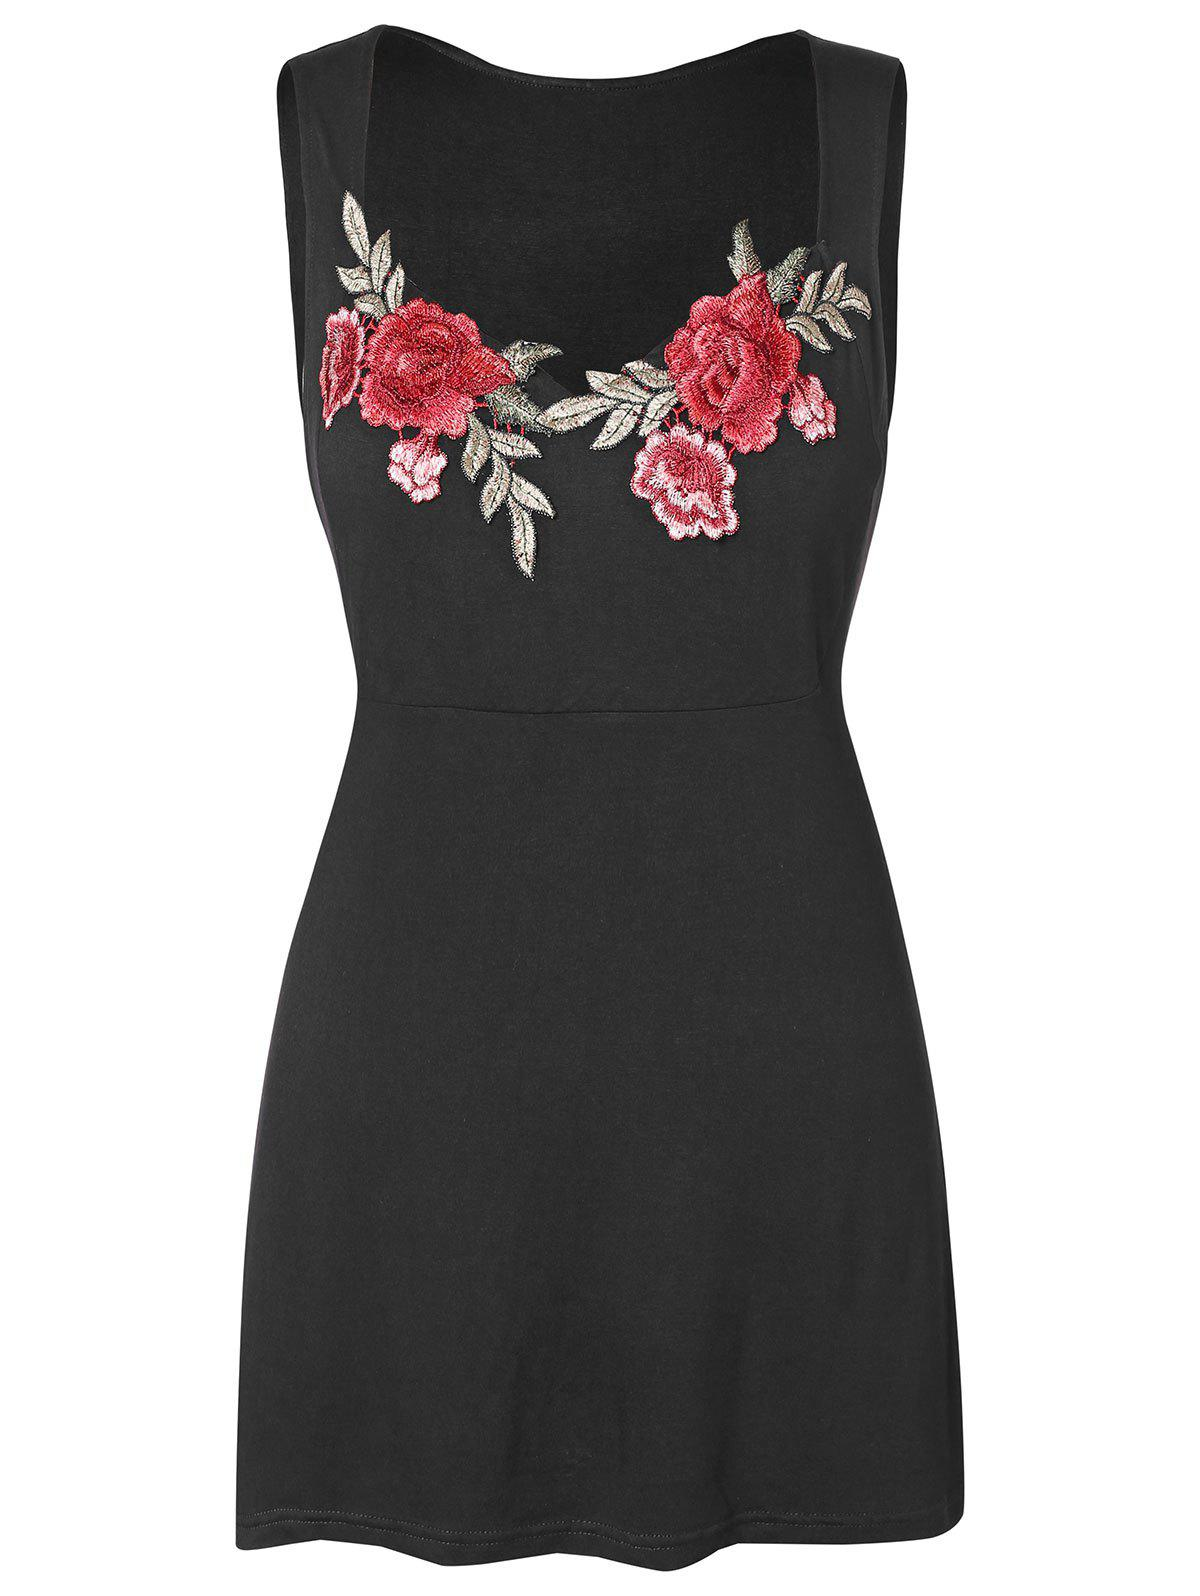 Plus Size Floral Embroidery Sweetheart Neck Tank Top - BLACK 4X